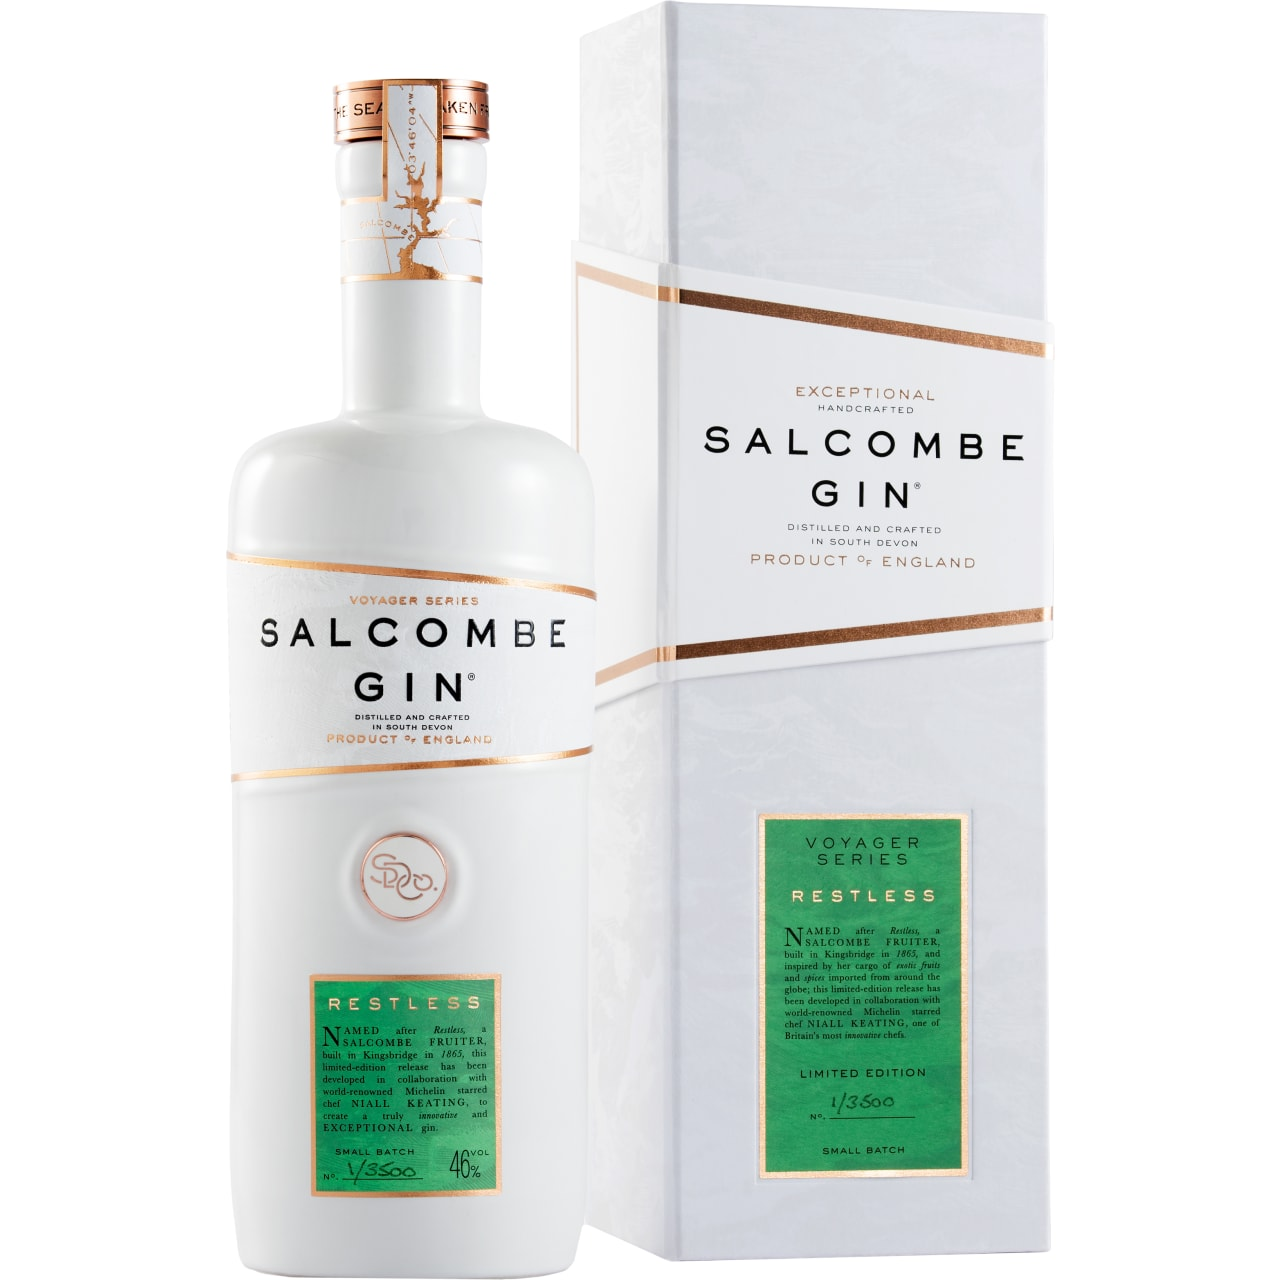 Product Image - Salcombe Voyager Series 'Restless' Gin